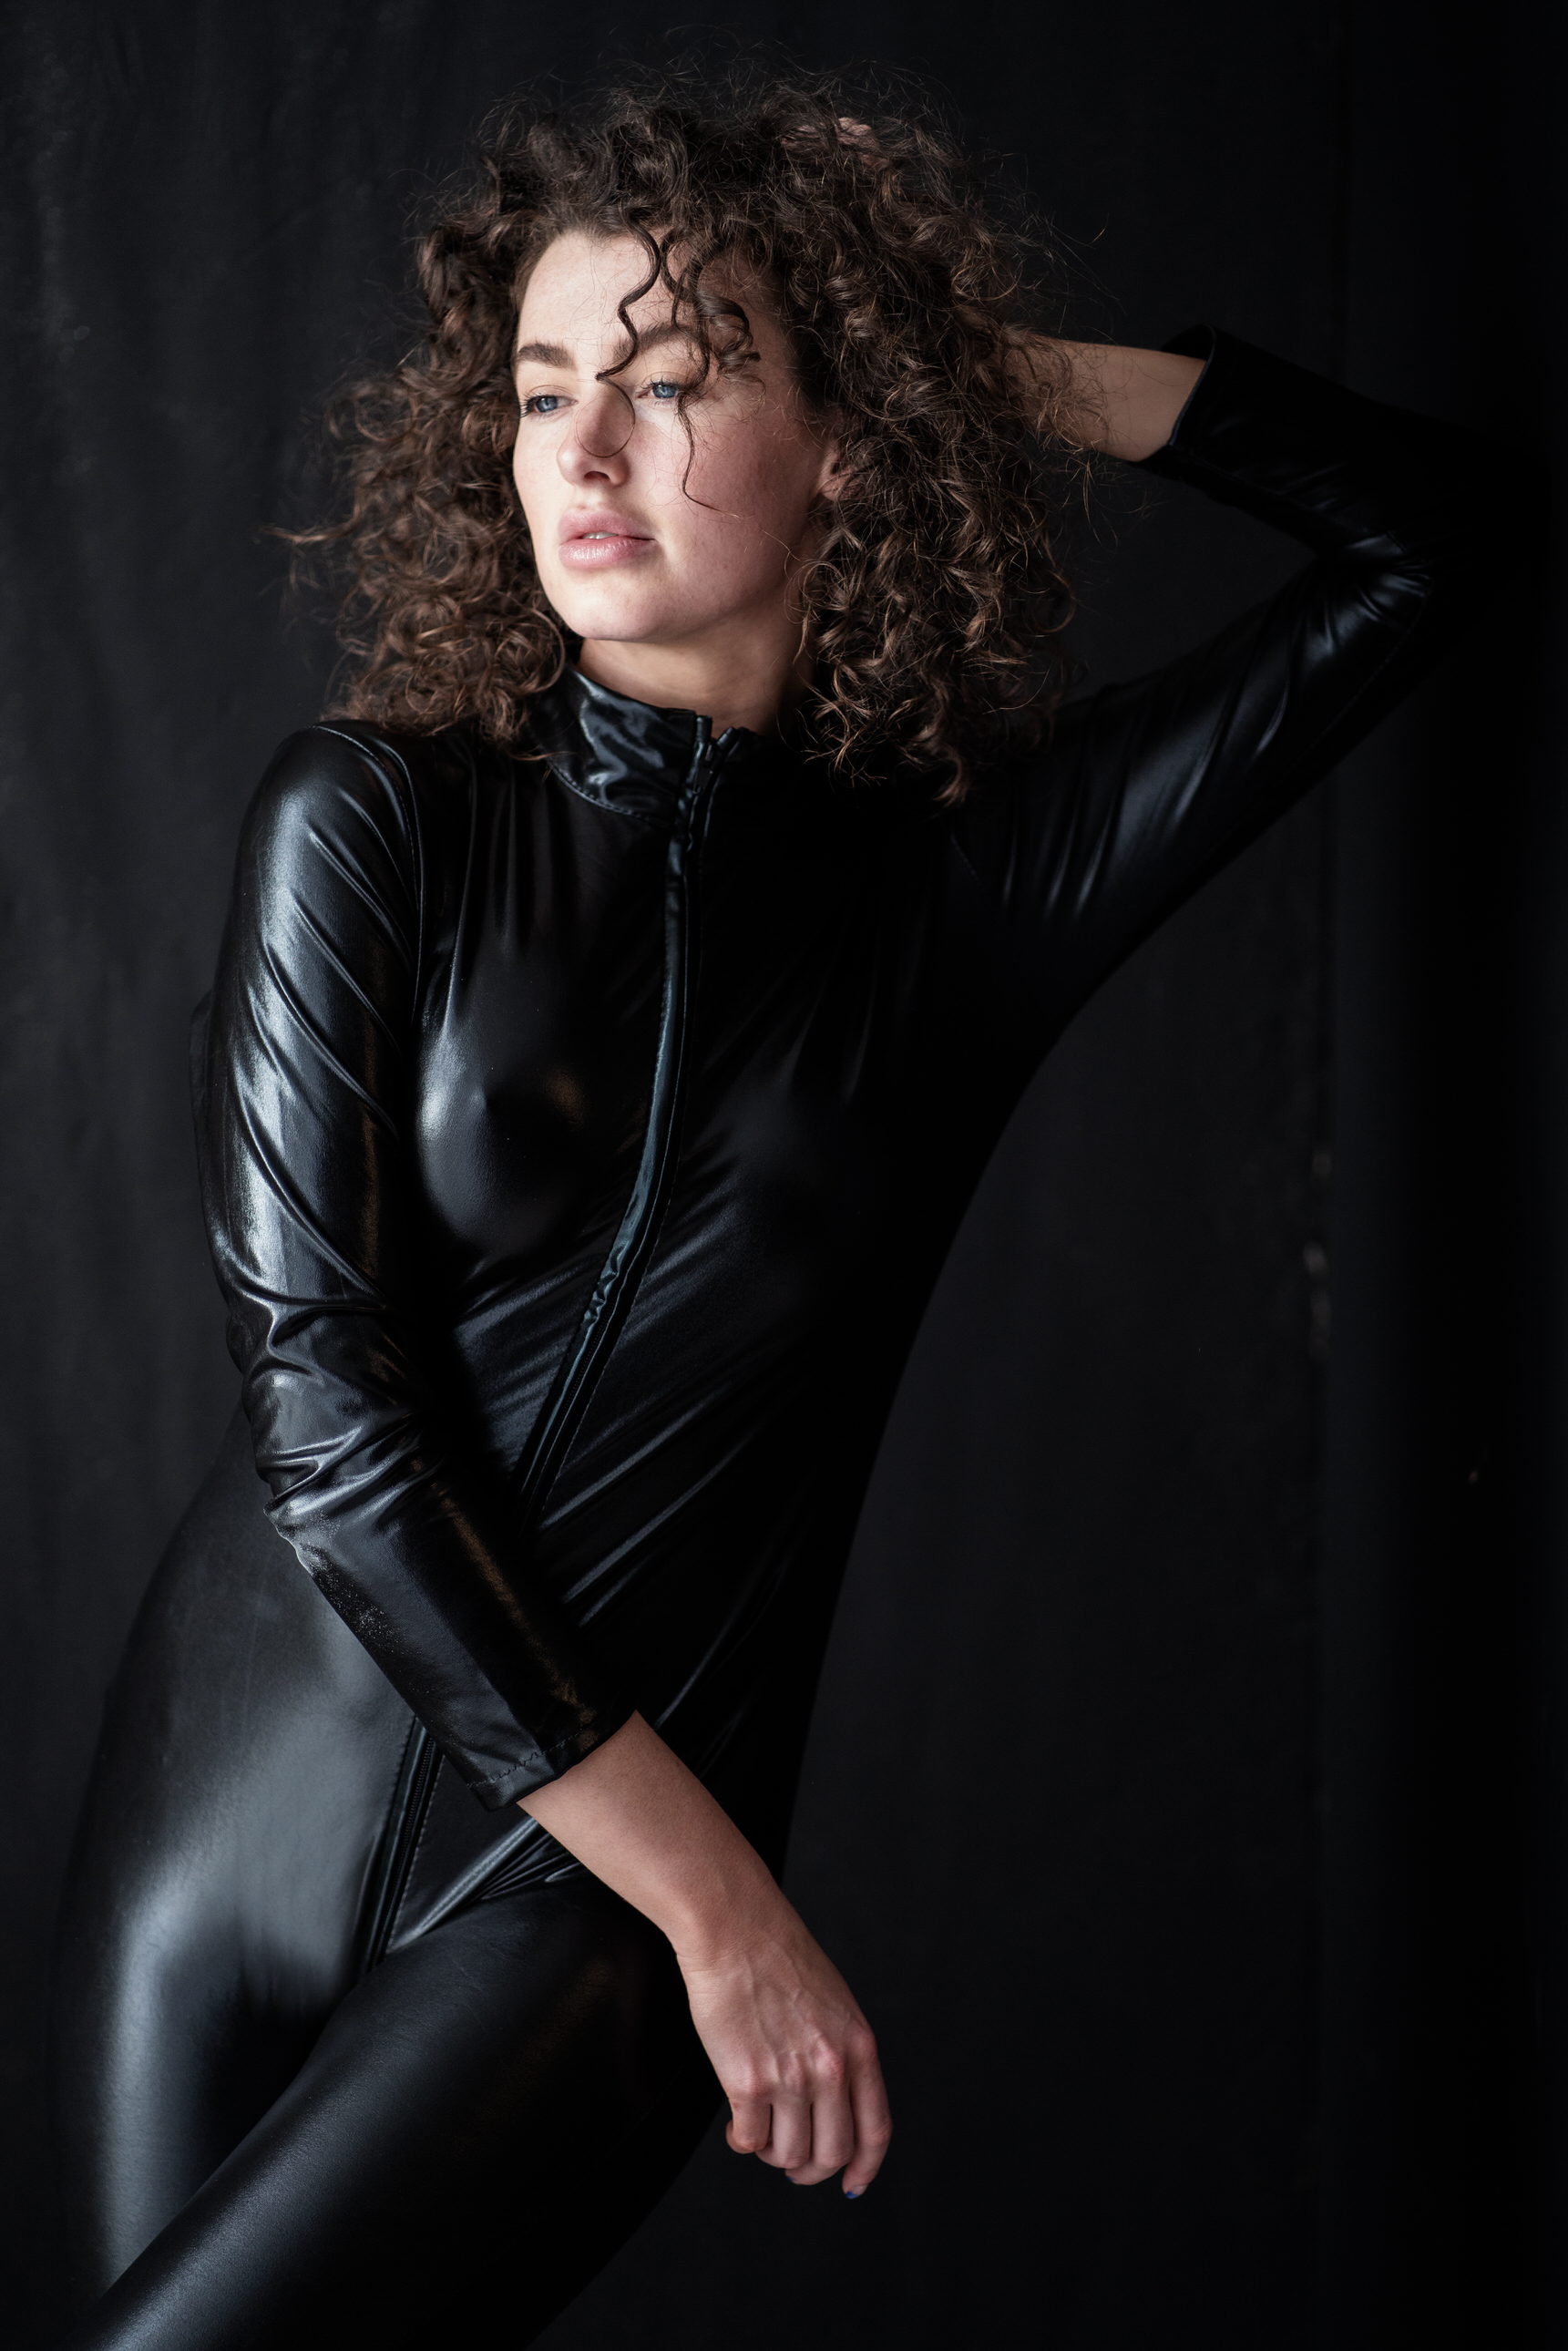 edgu boudoir image girl in black PVC catsuit by Boudoir Photographer Lancashire